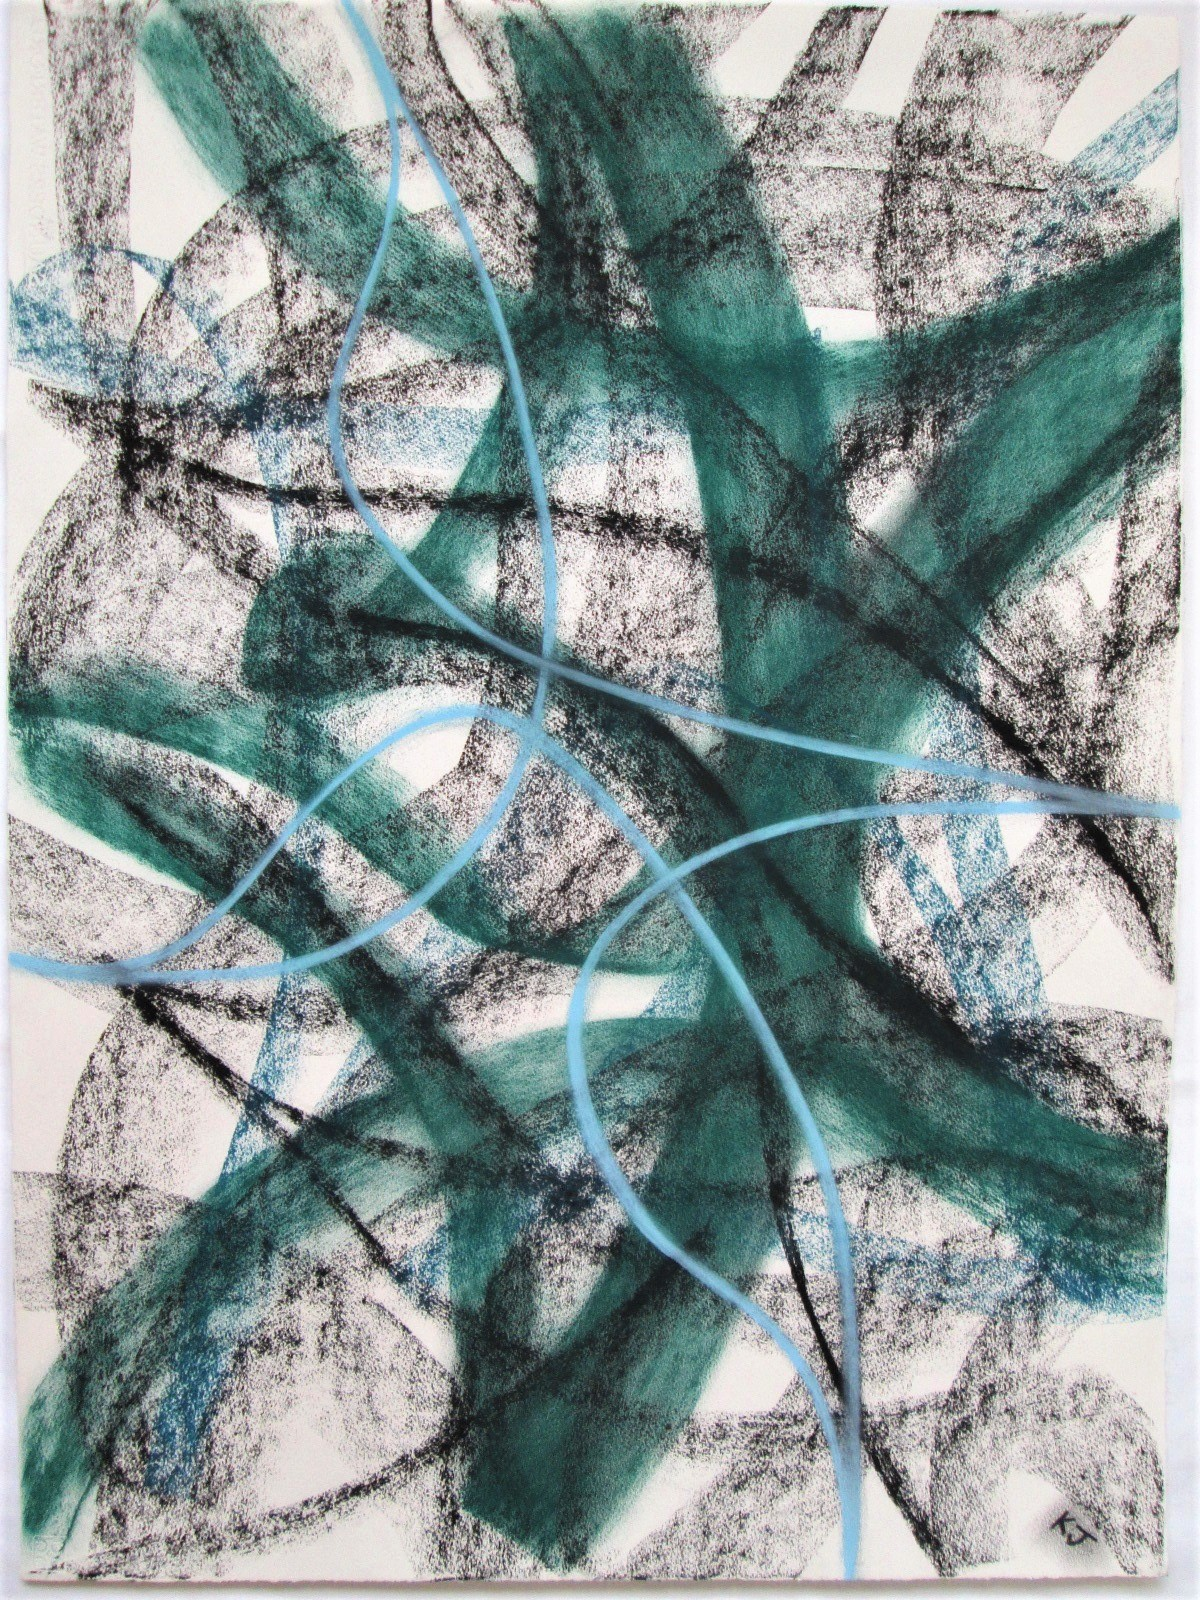 Movement No 2 artwork by Kevin Jones - art listed for sale on Artplode